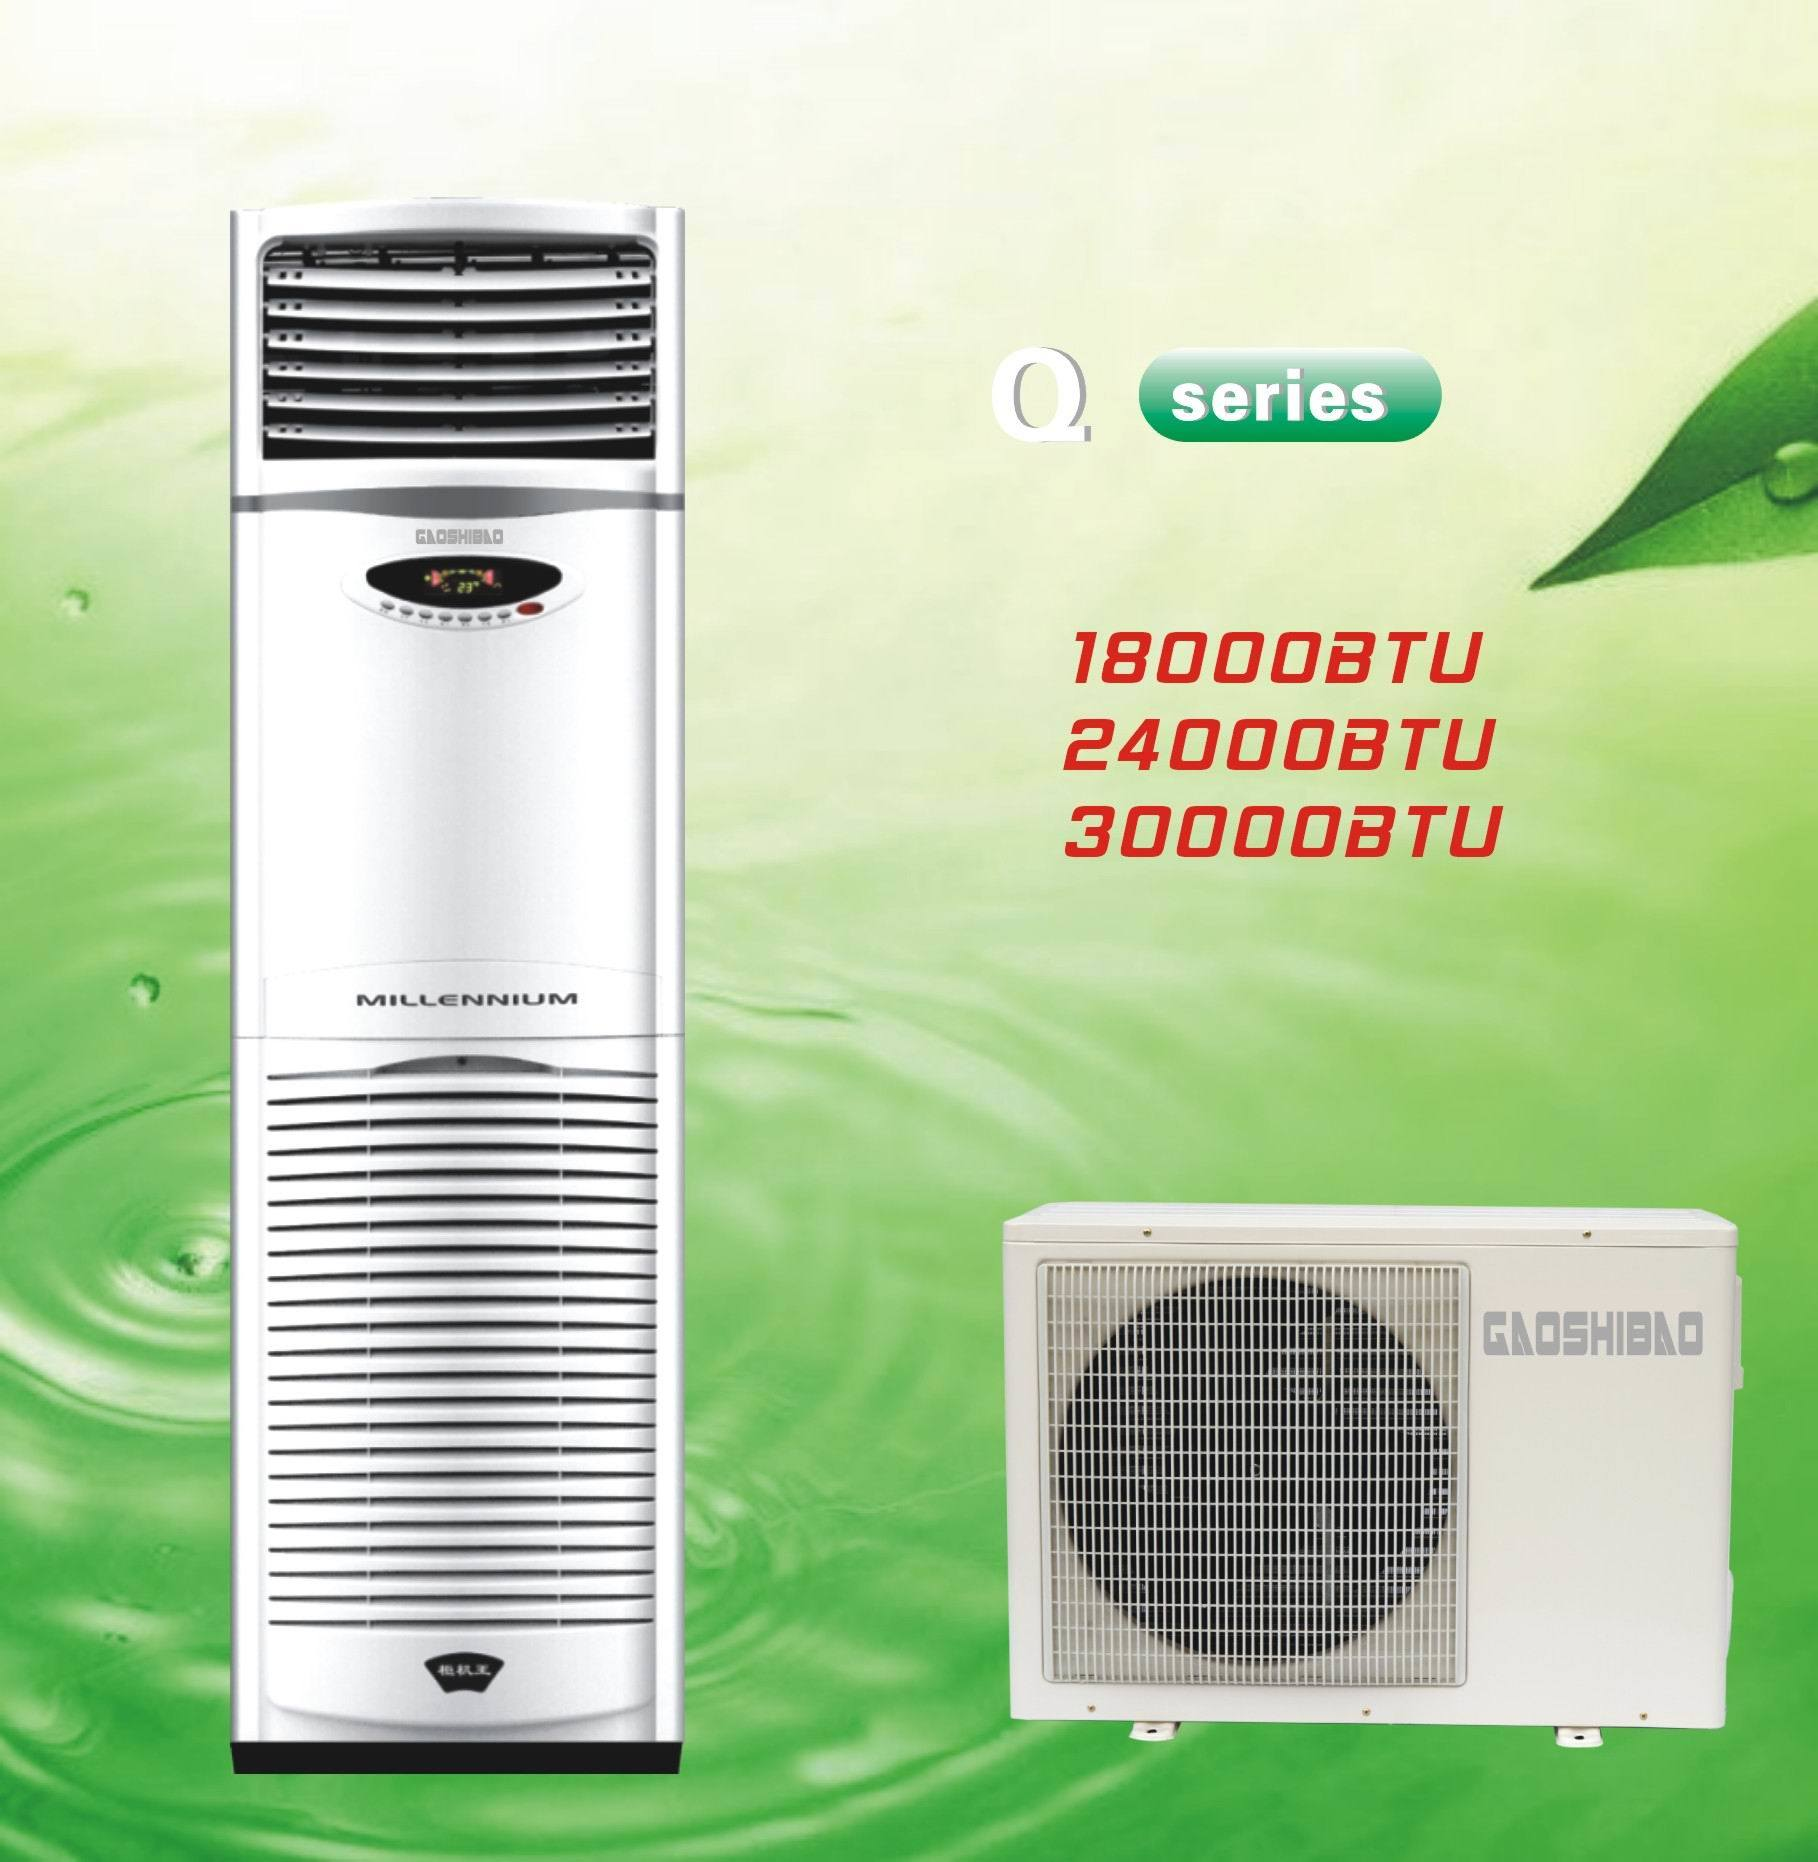 #B32218 China Stand Up Floor Air Conditioner Home Floor Standing  2017 14232 Stand Up Air Conditioners photo with 1818x1862 px on helpvideos.info - Air Conditioners, Air Coolers and more